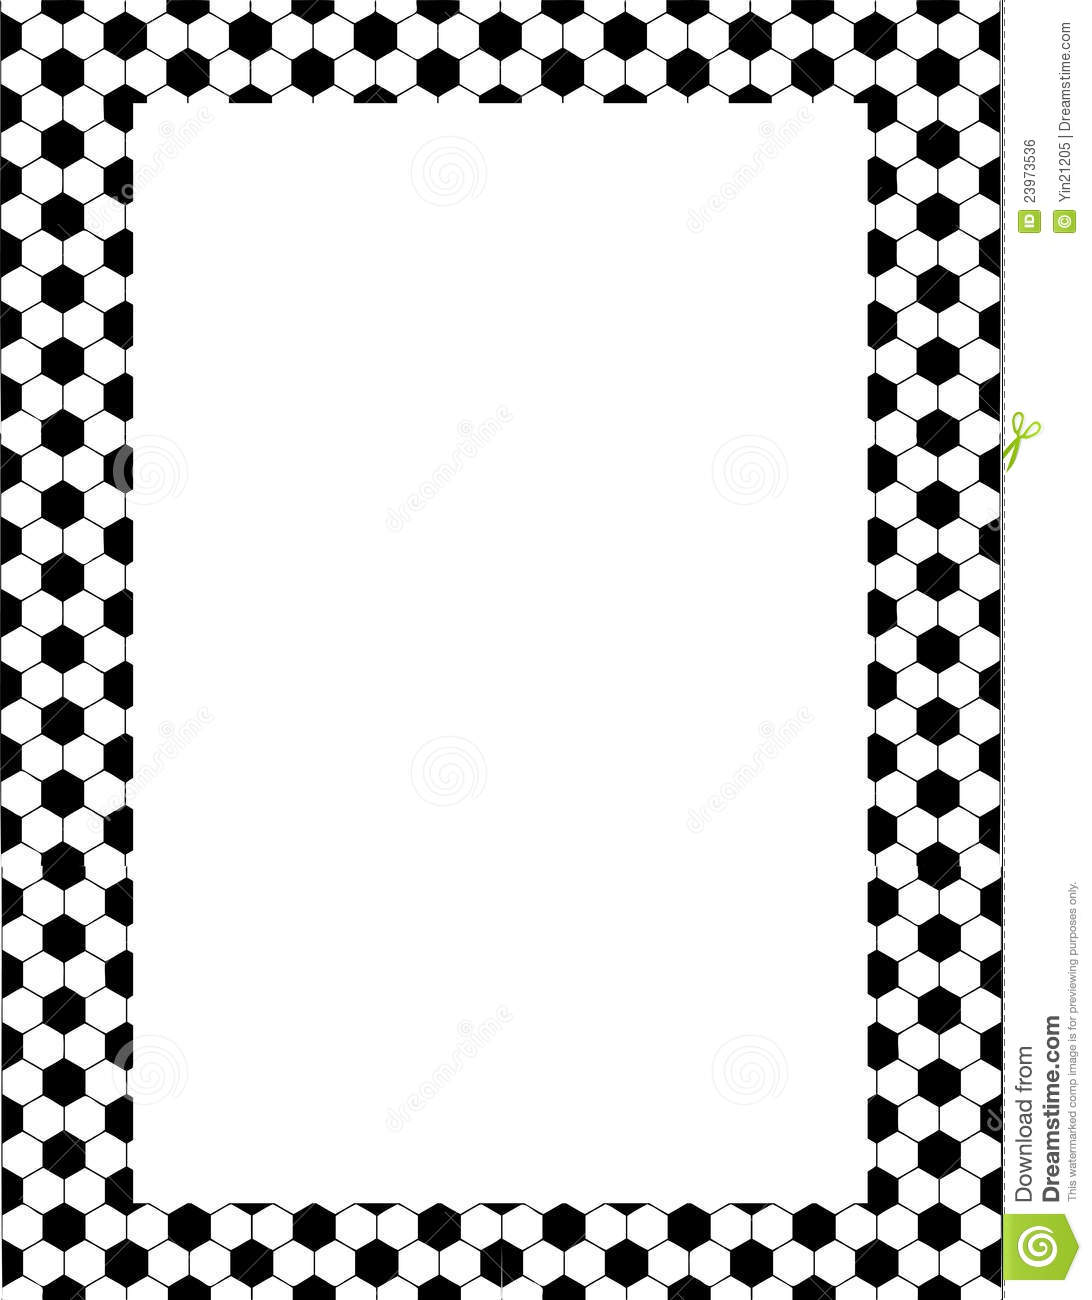 Football border clipart panda free clipart images clipart info voltagebd Choice Image